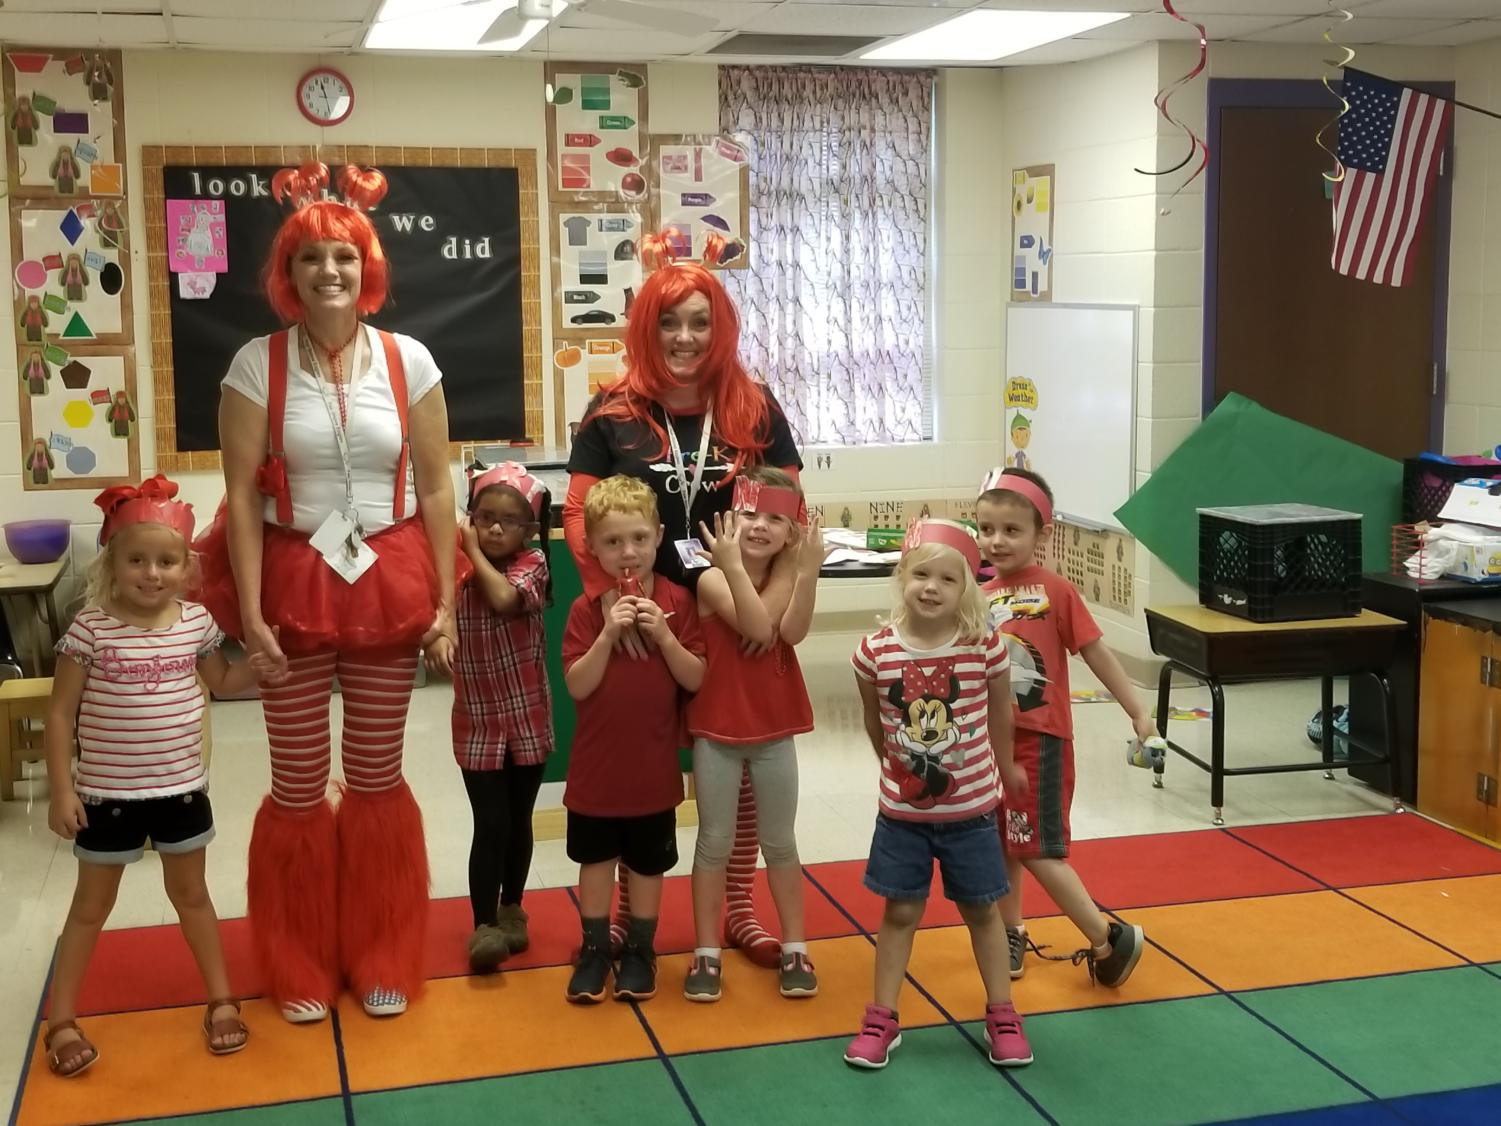 Mrs. Hill poses with some of her students on Red Day  Photo from the Fair Grove School website